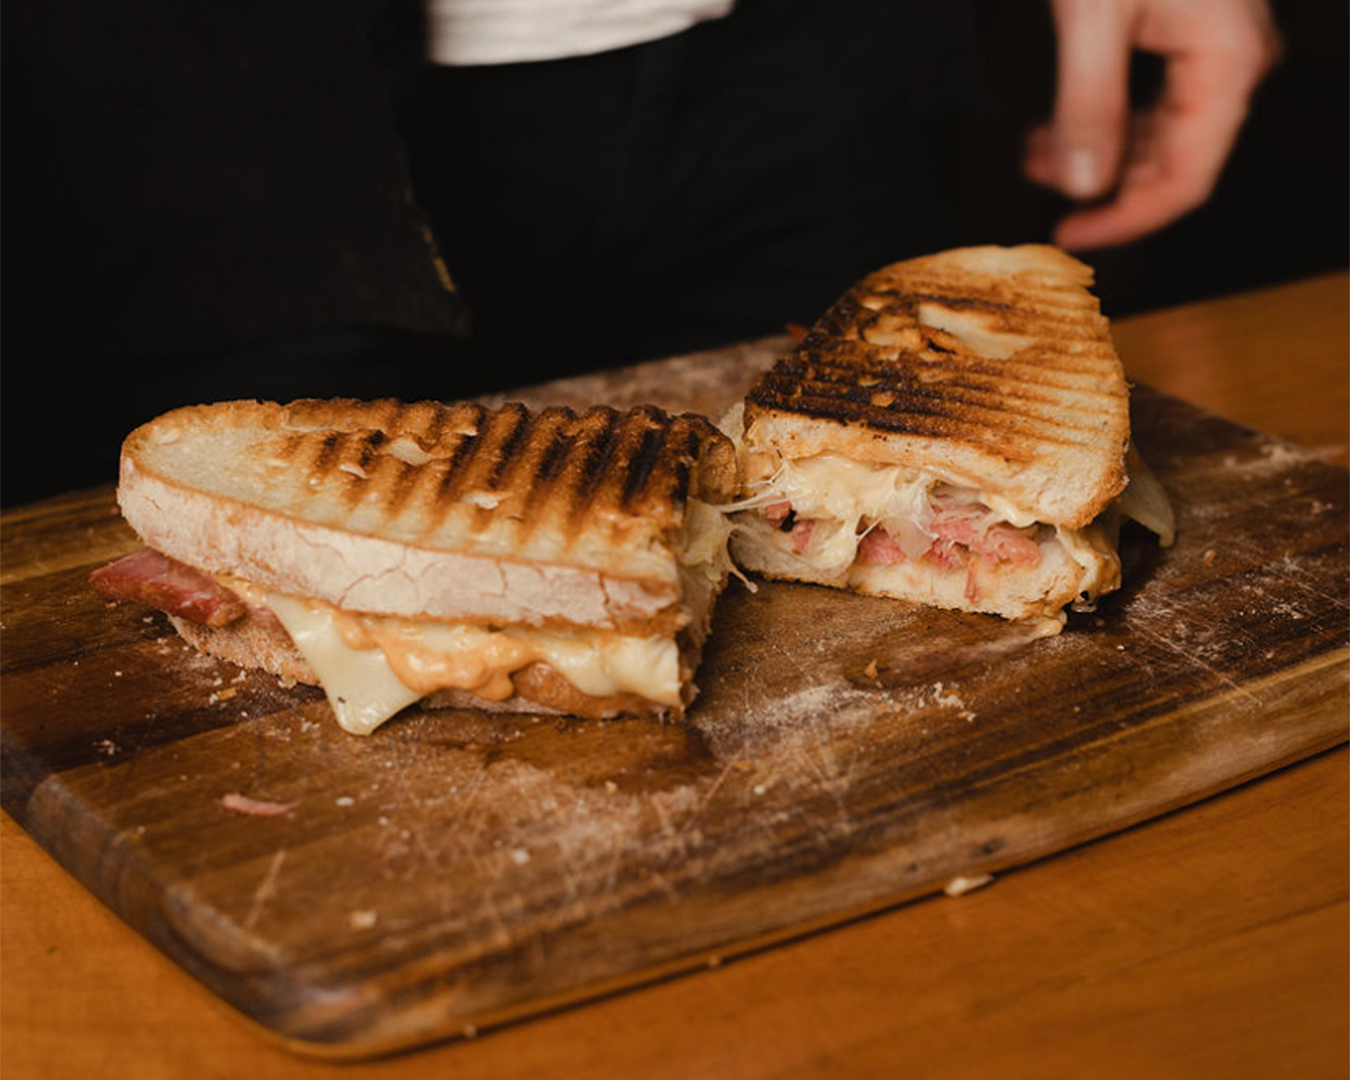 A lovely looking sandwich at Dedwood Deli.